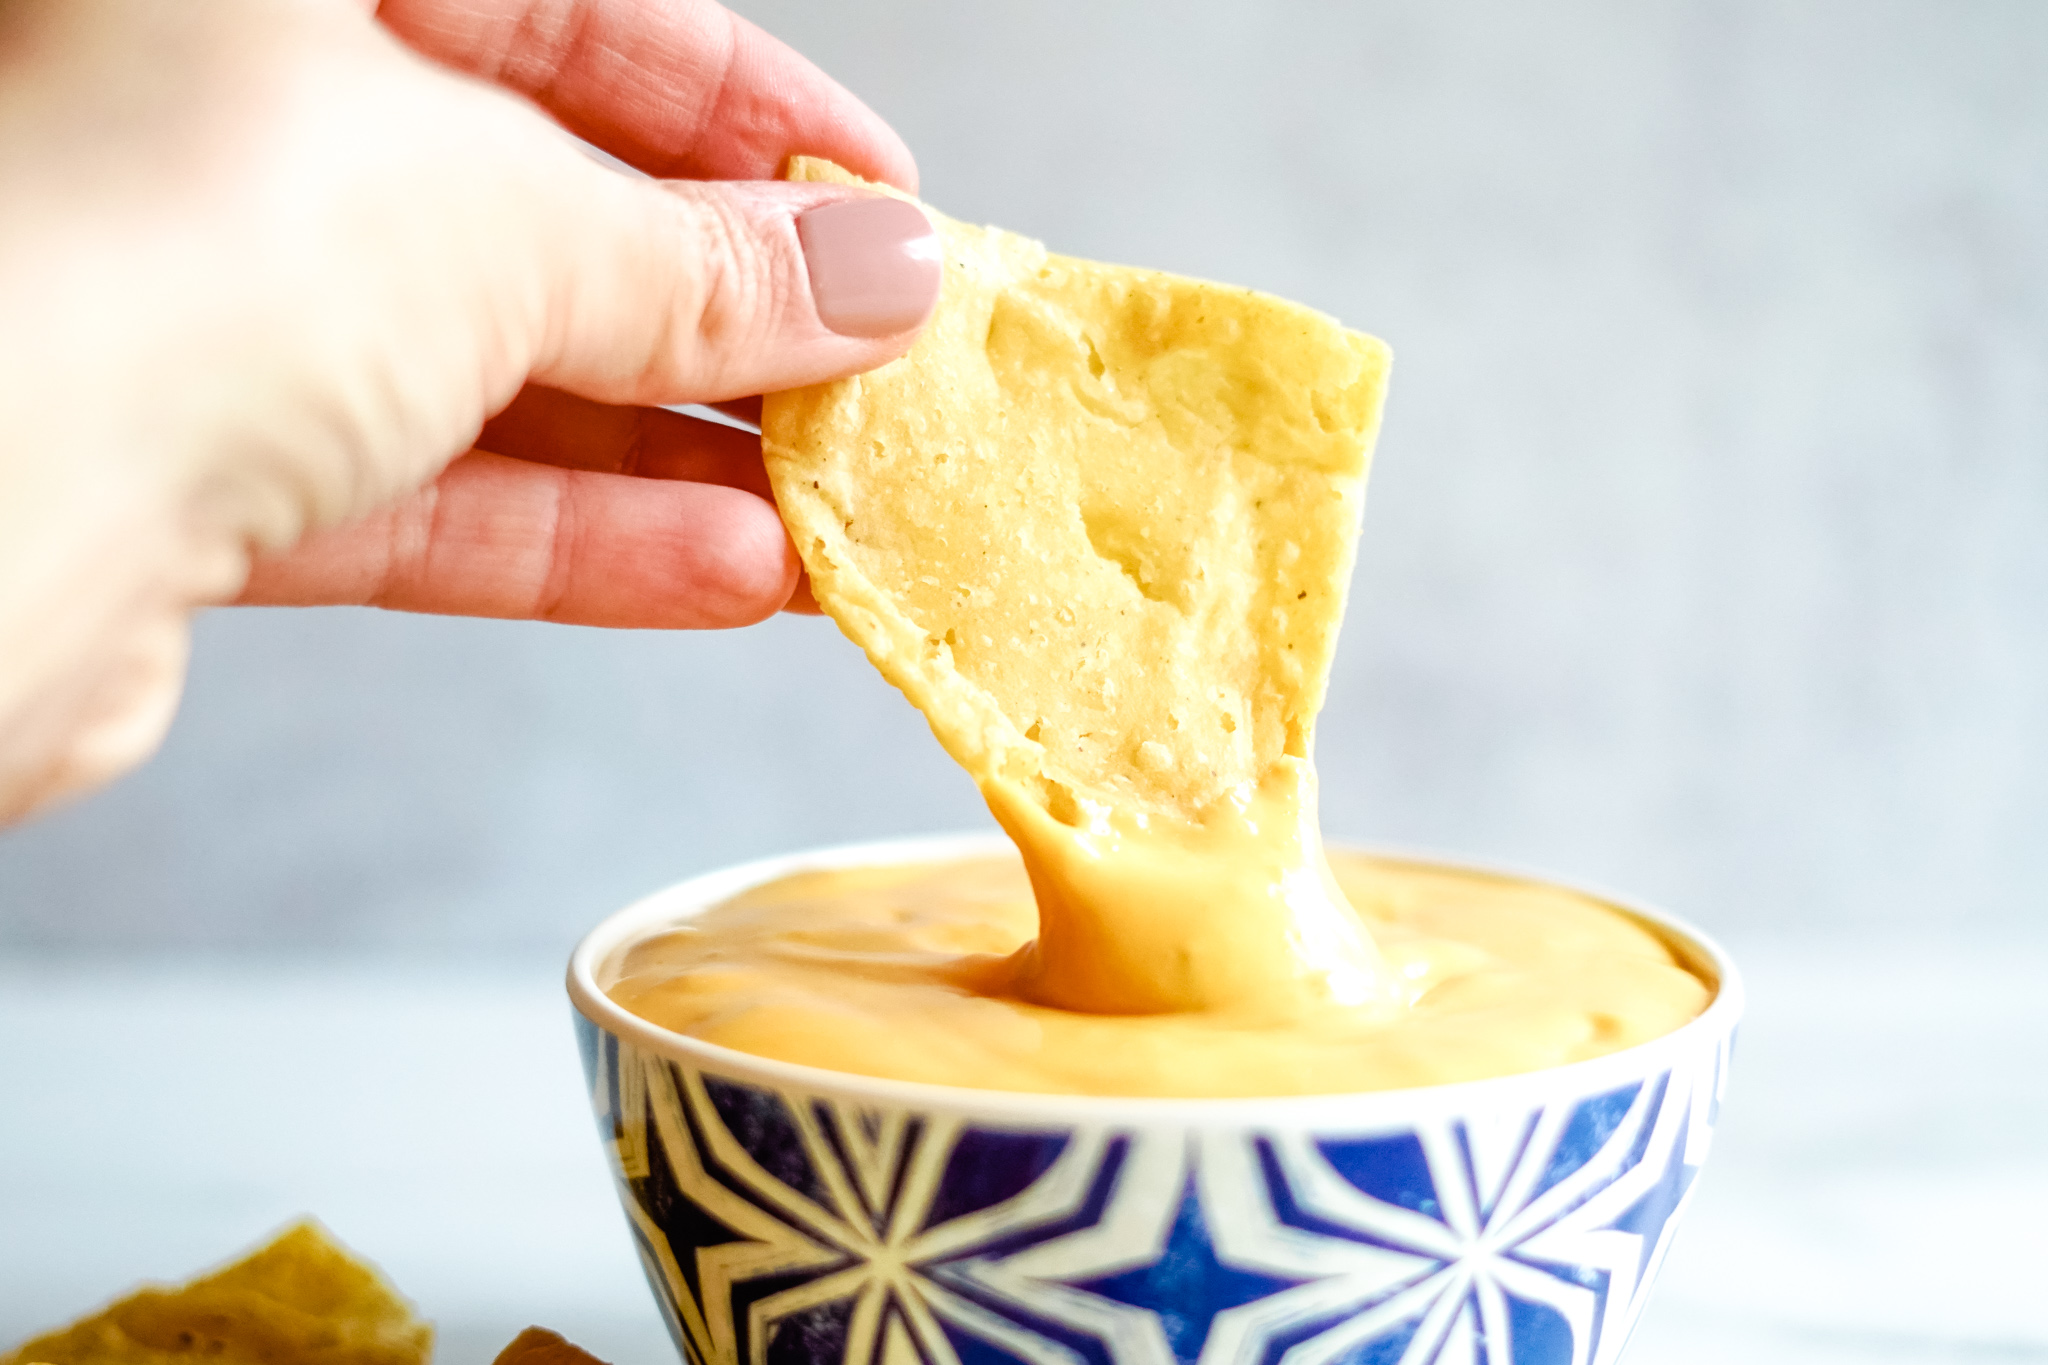 Taco Bell Copycat Chips And Nacho Cheese Sauce My Life And Kids